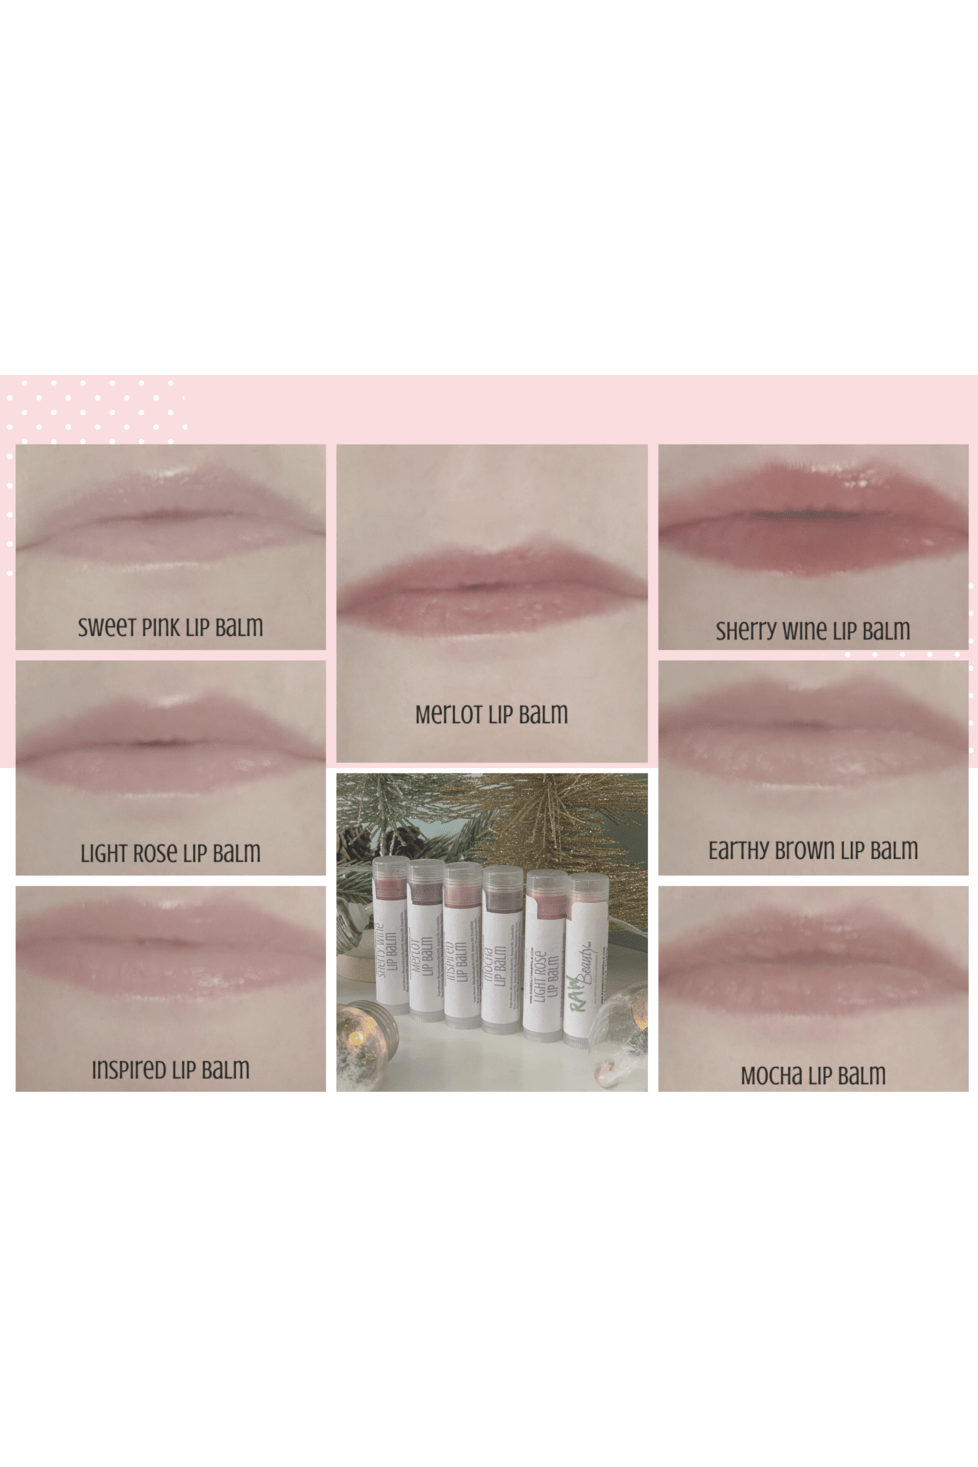 Tinted Lip Balm | Natural Tint Lip Chap | Raw Beauty Minerals - Himelhoch's